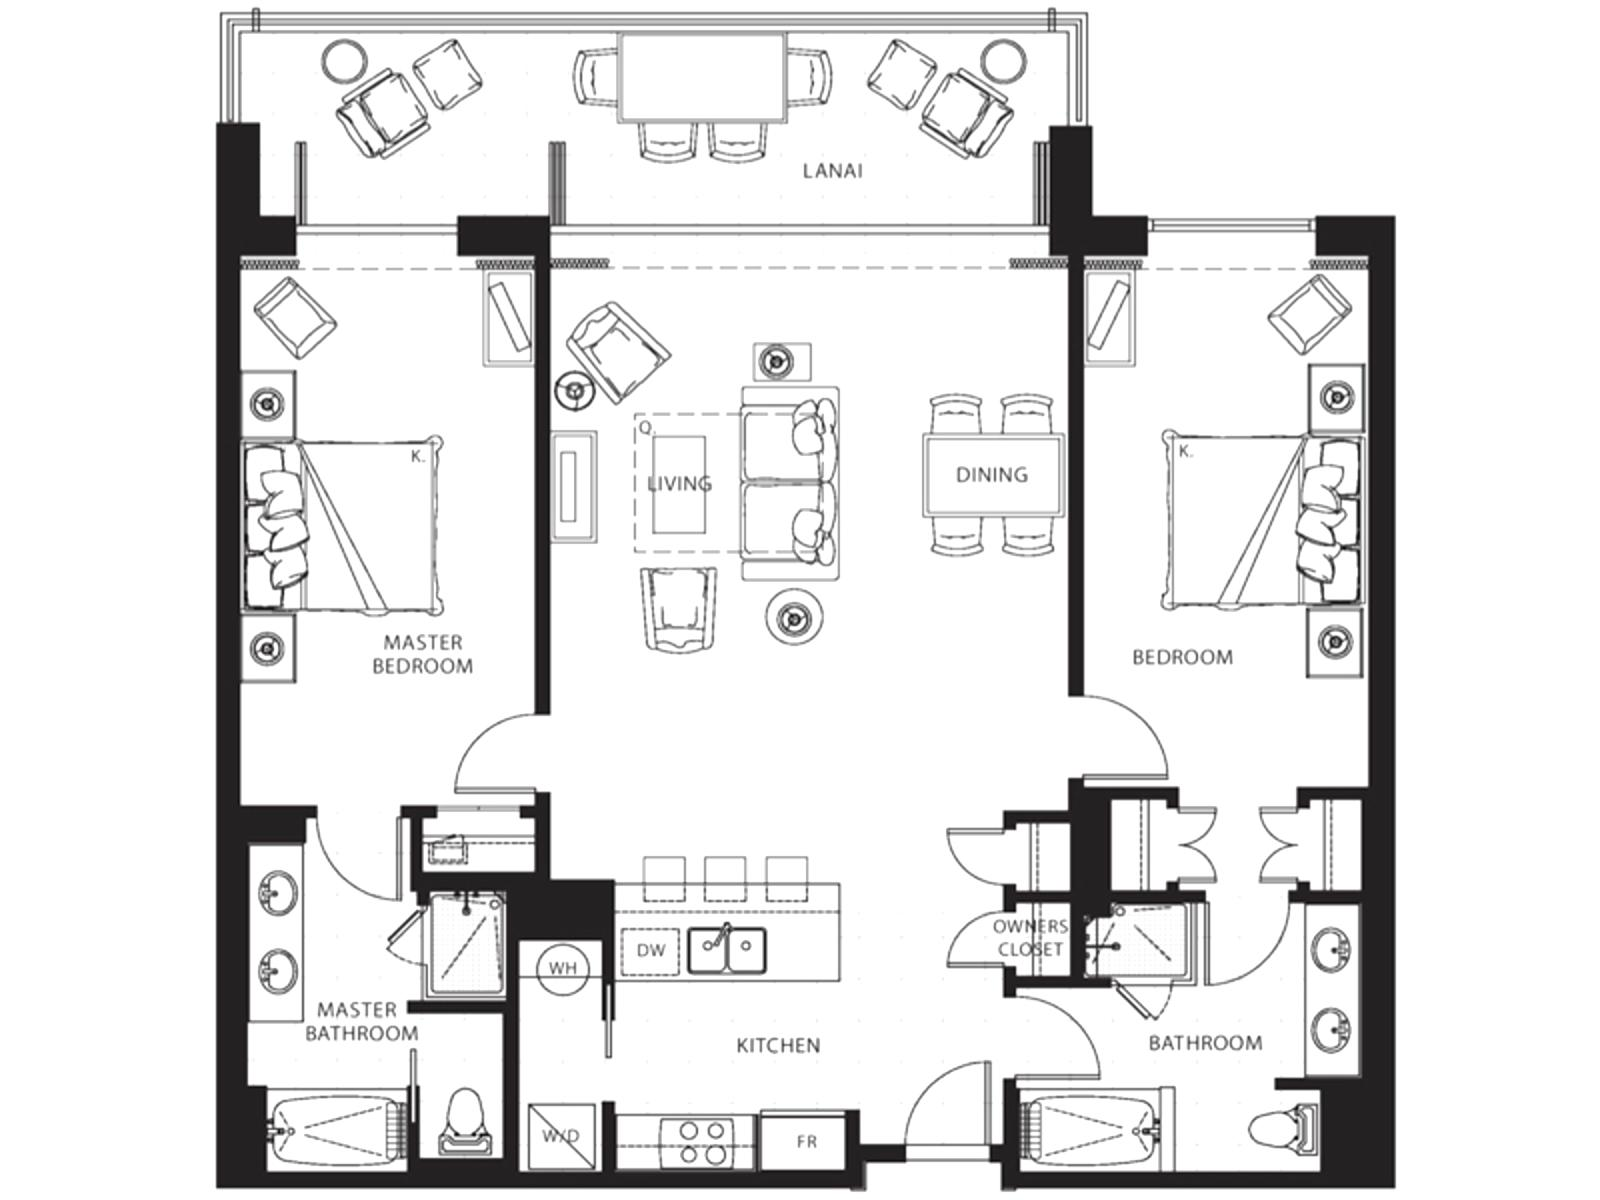 Layout Overview